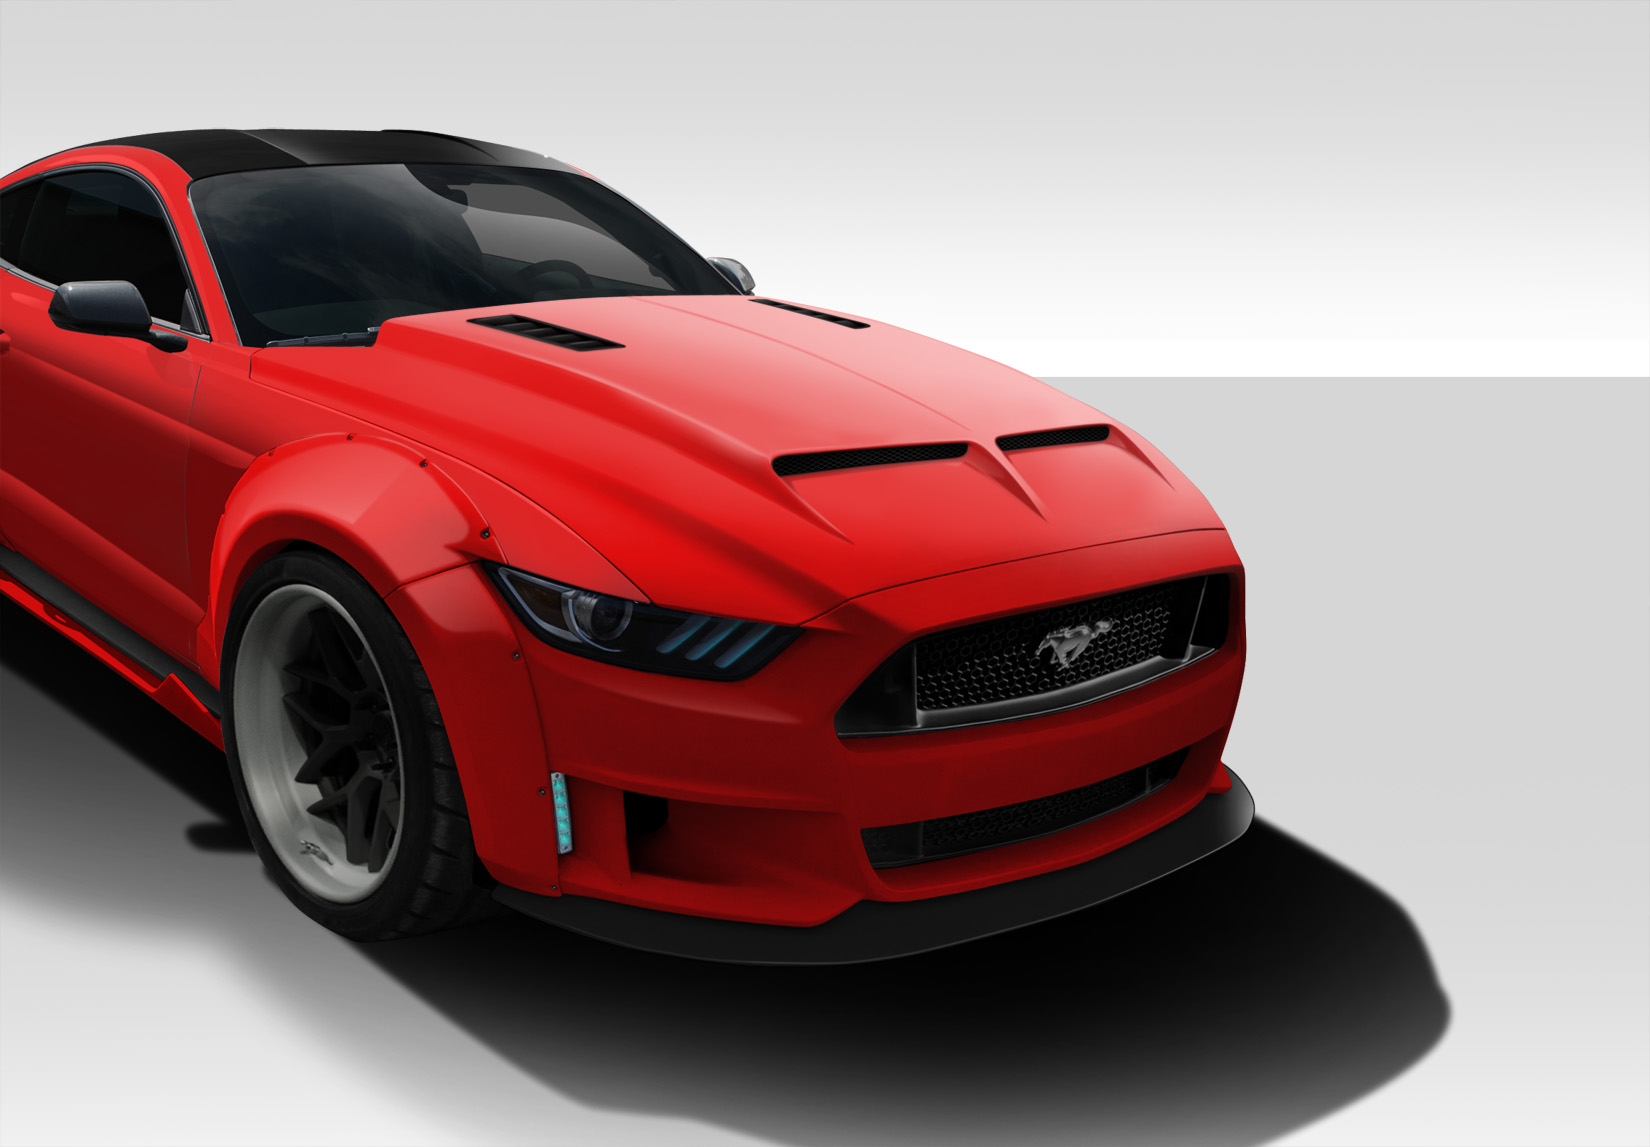 Details about 15 17 ford mustang gt500 duraflex body kit hood 112578